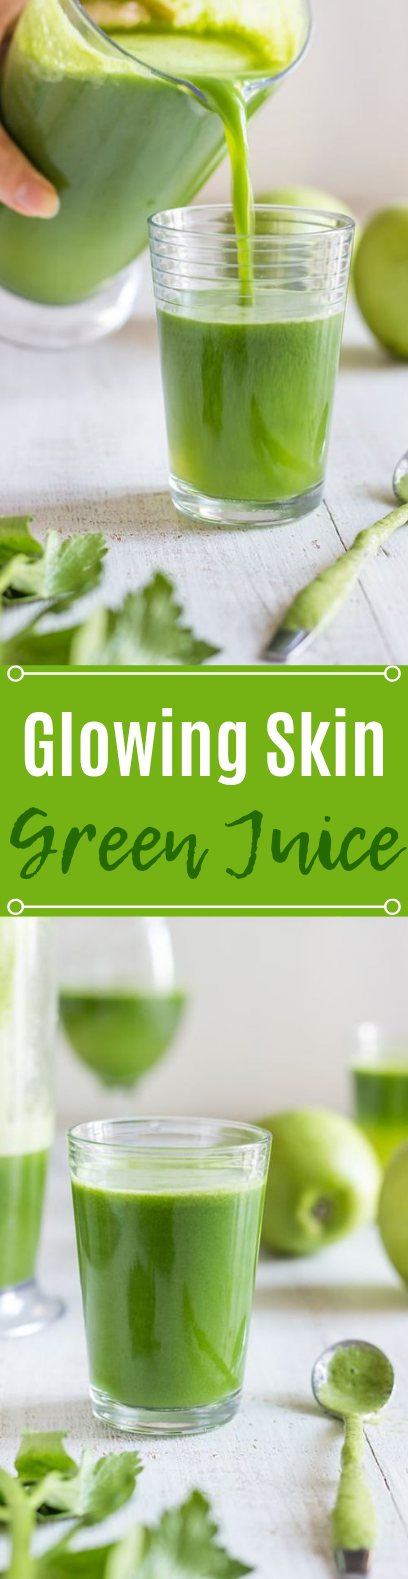 Glowing Skin Green Juice #healthy #drinks